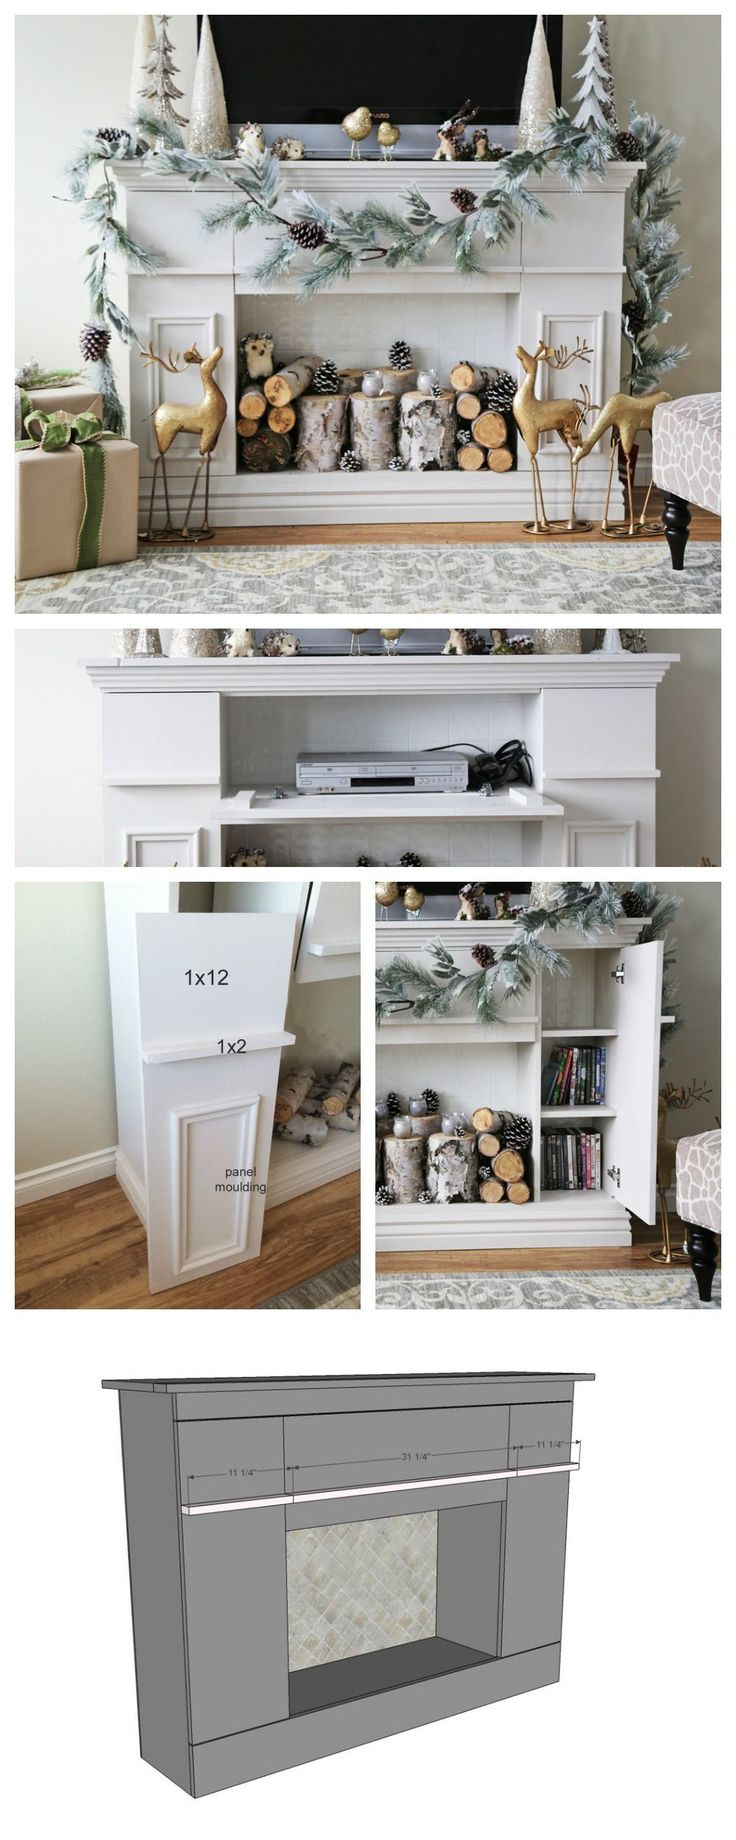 Ana White | Build a Faux Fireplace Mantle with Hidden Storage Cabinets | Free and Easy DIY Project and Furniture Plans - WHAT?!